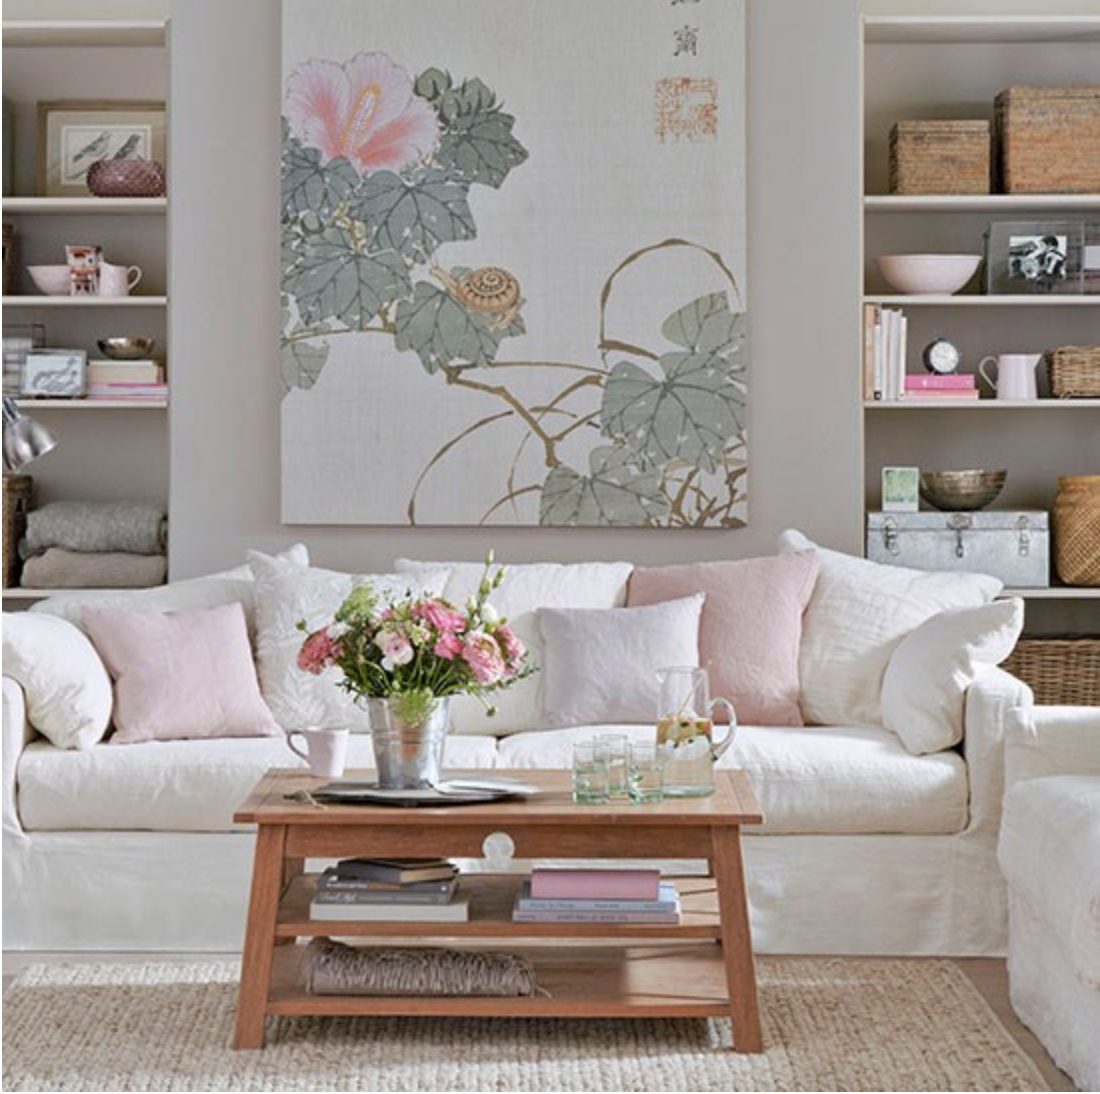 Home Office Designs Living Room Decorating Ideas: Salas Pequenas, Romanticas E Muito Charmosas